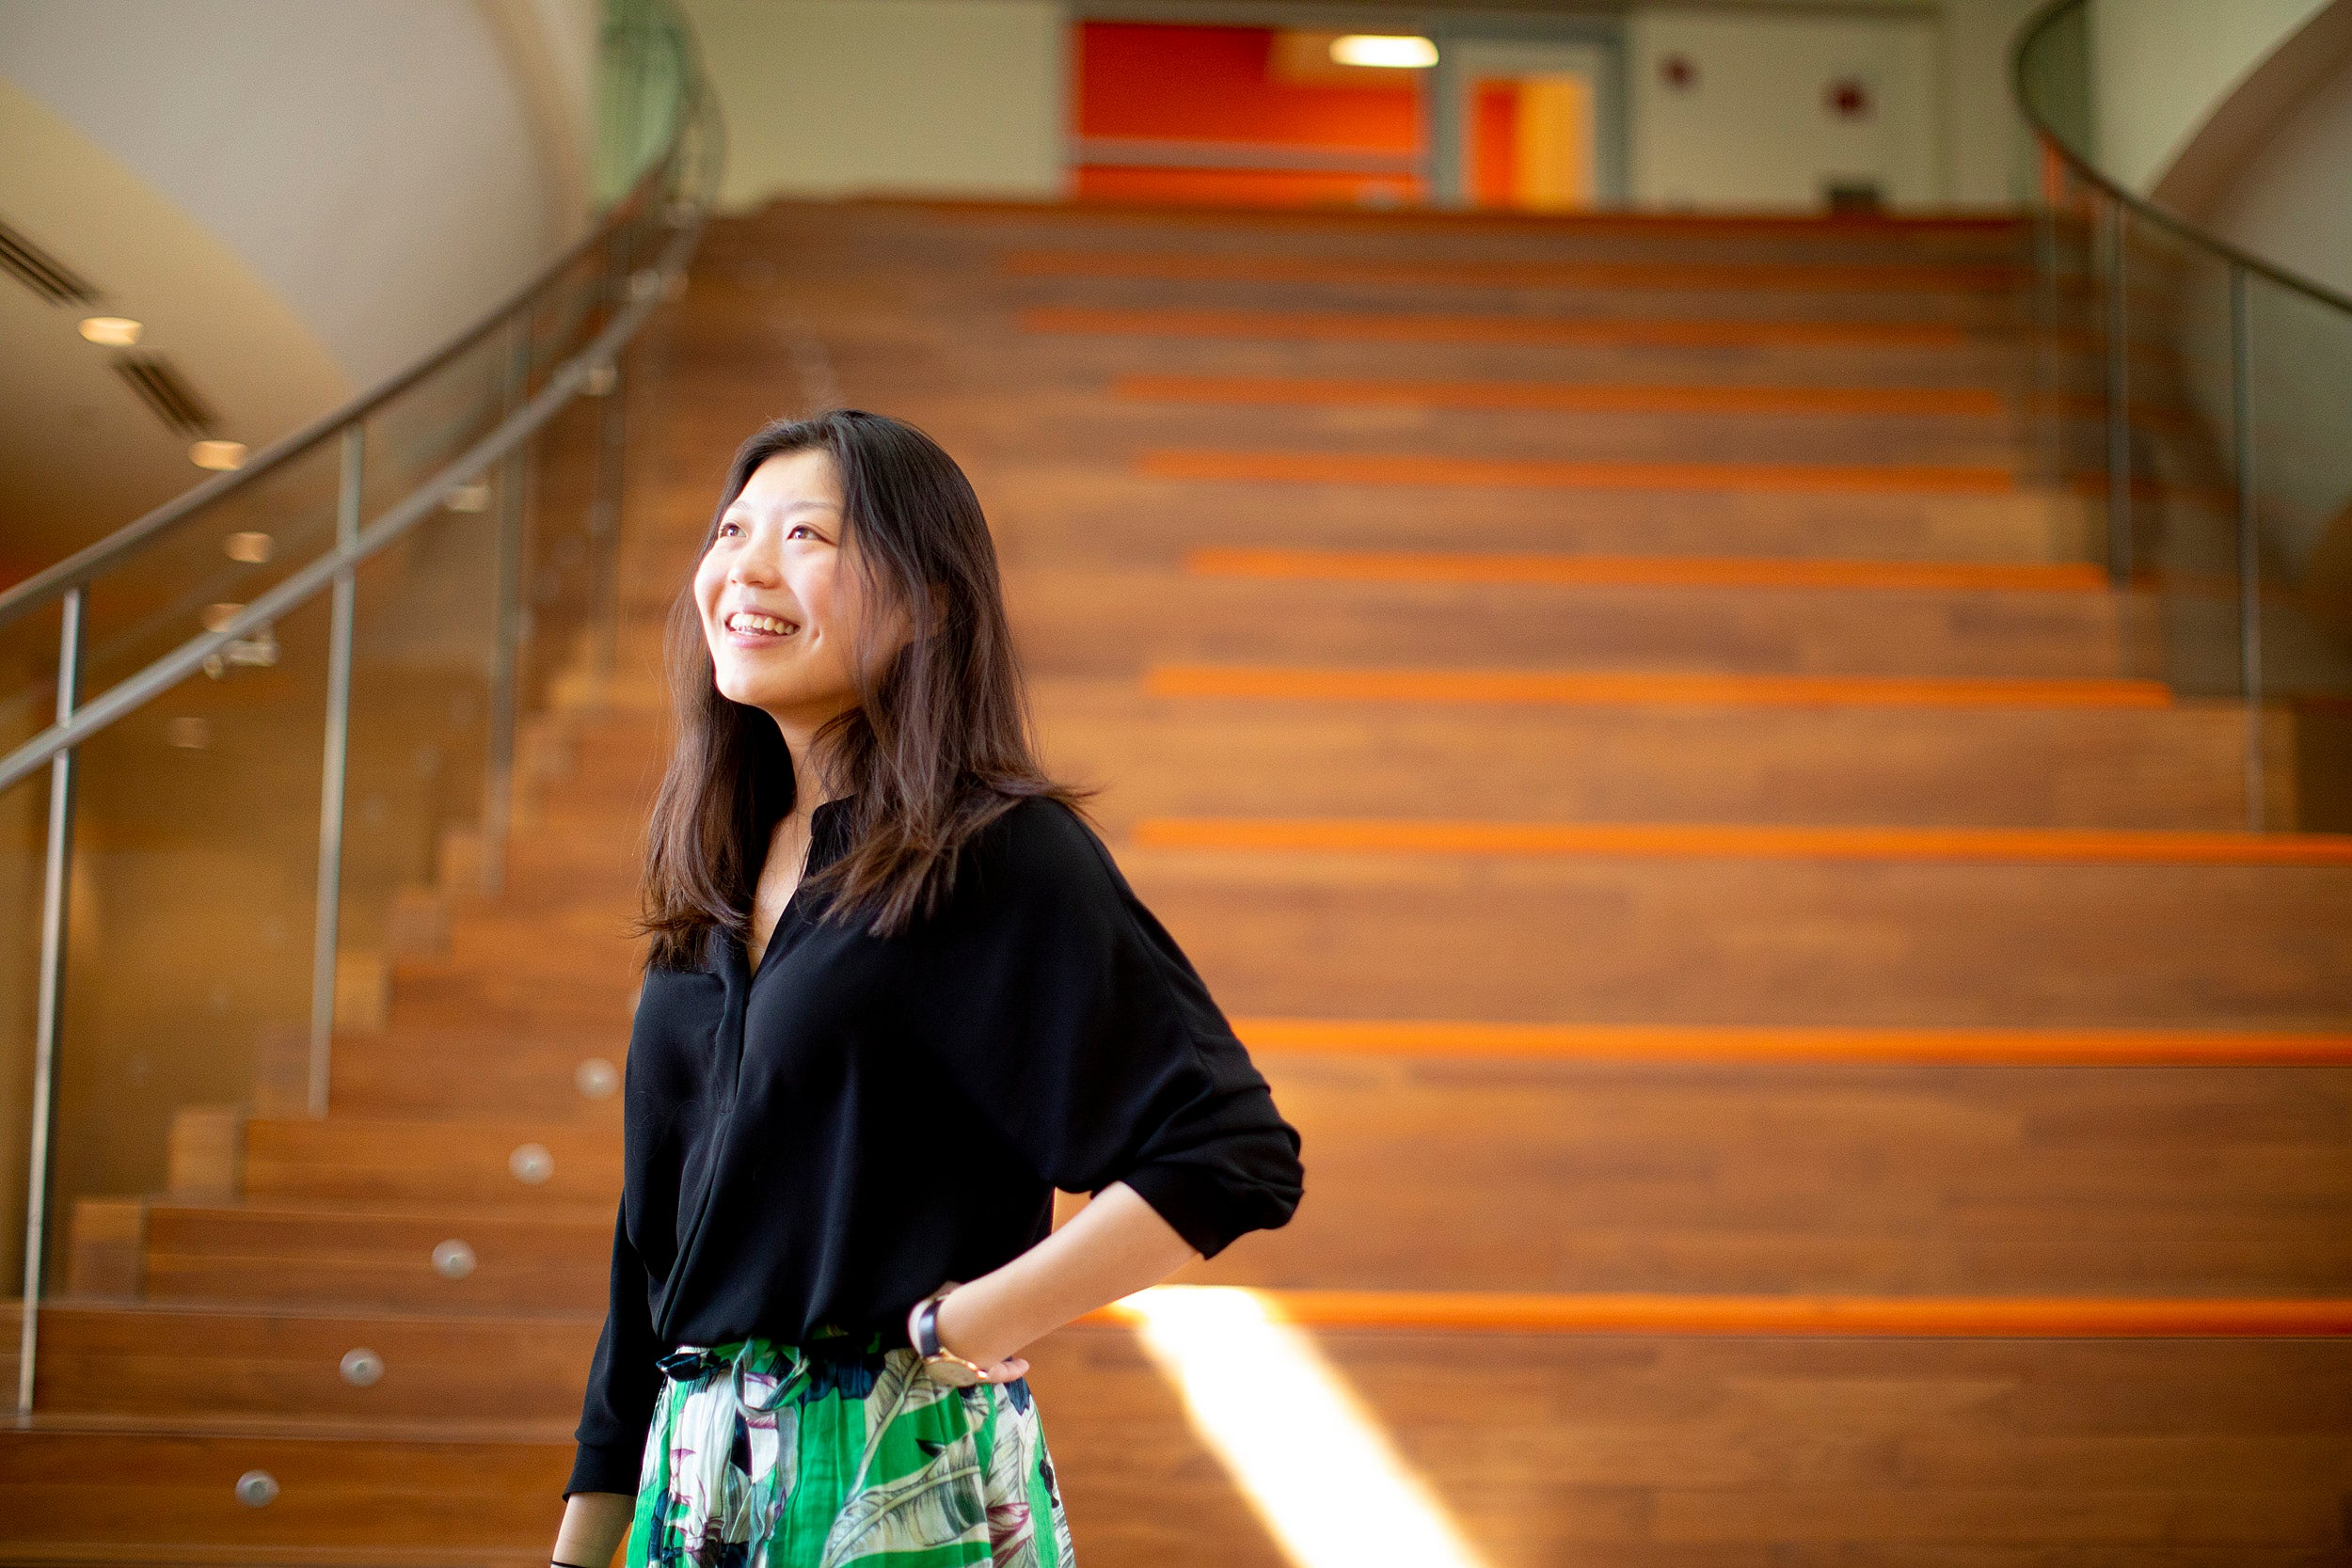 Cynthia Luo in front of stairs